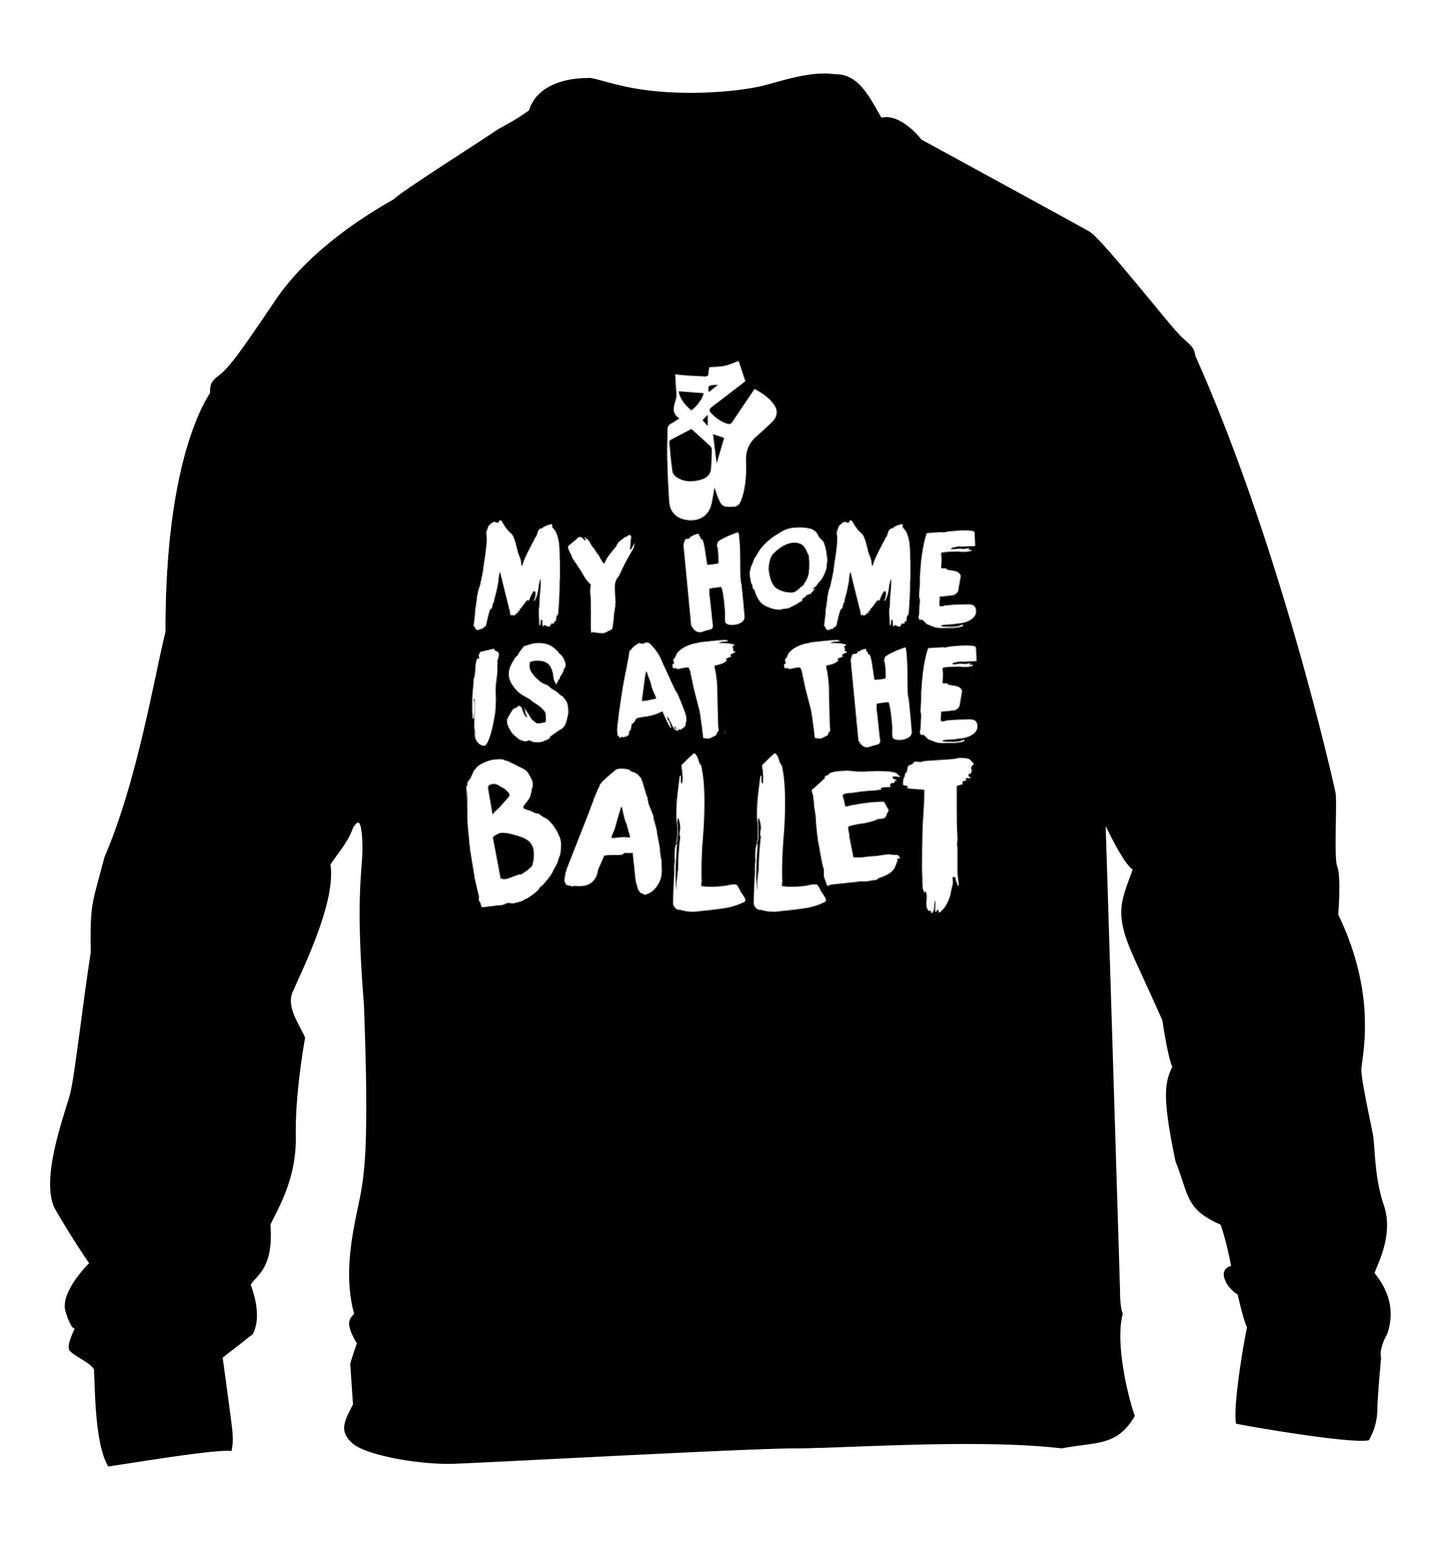 My home is at the ballet children's black sweater 12-14 Years